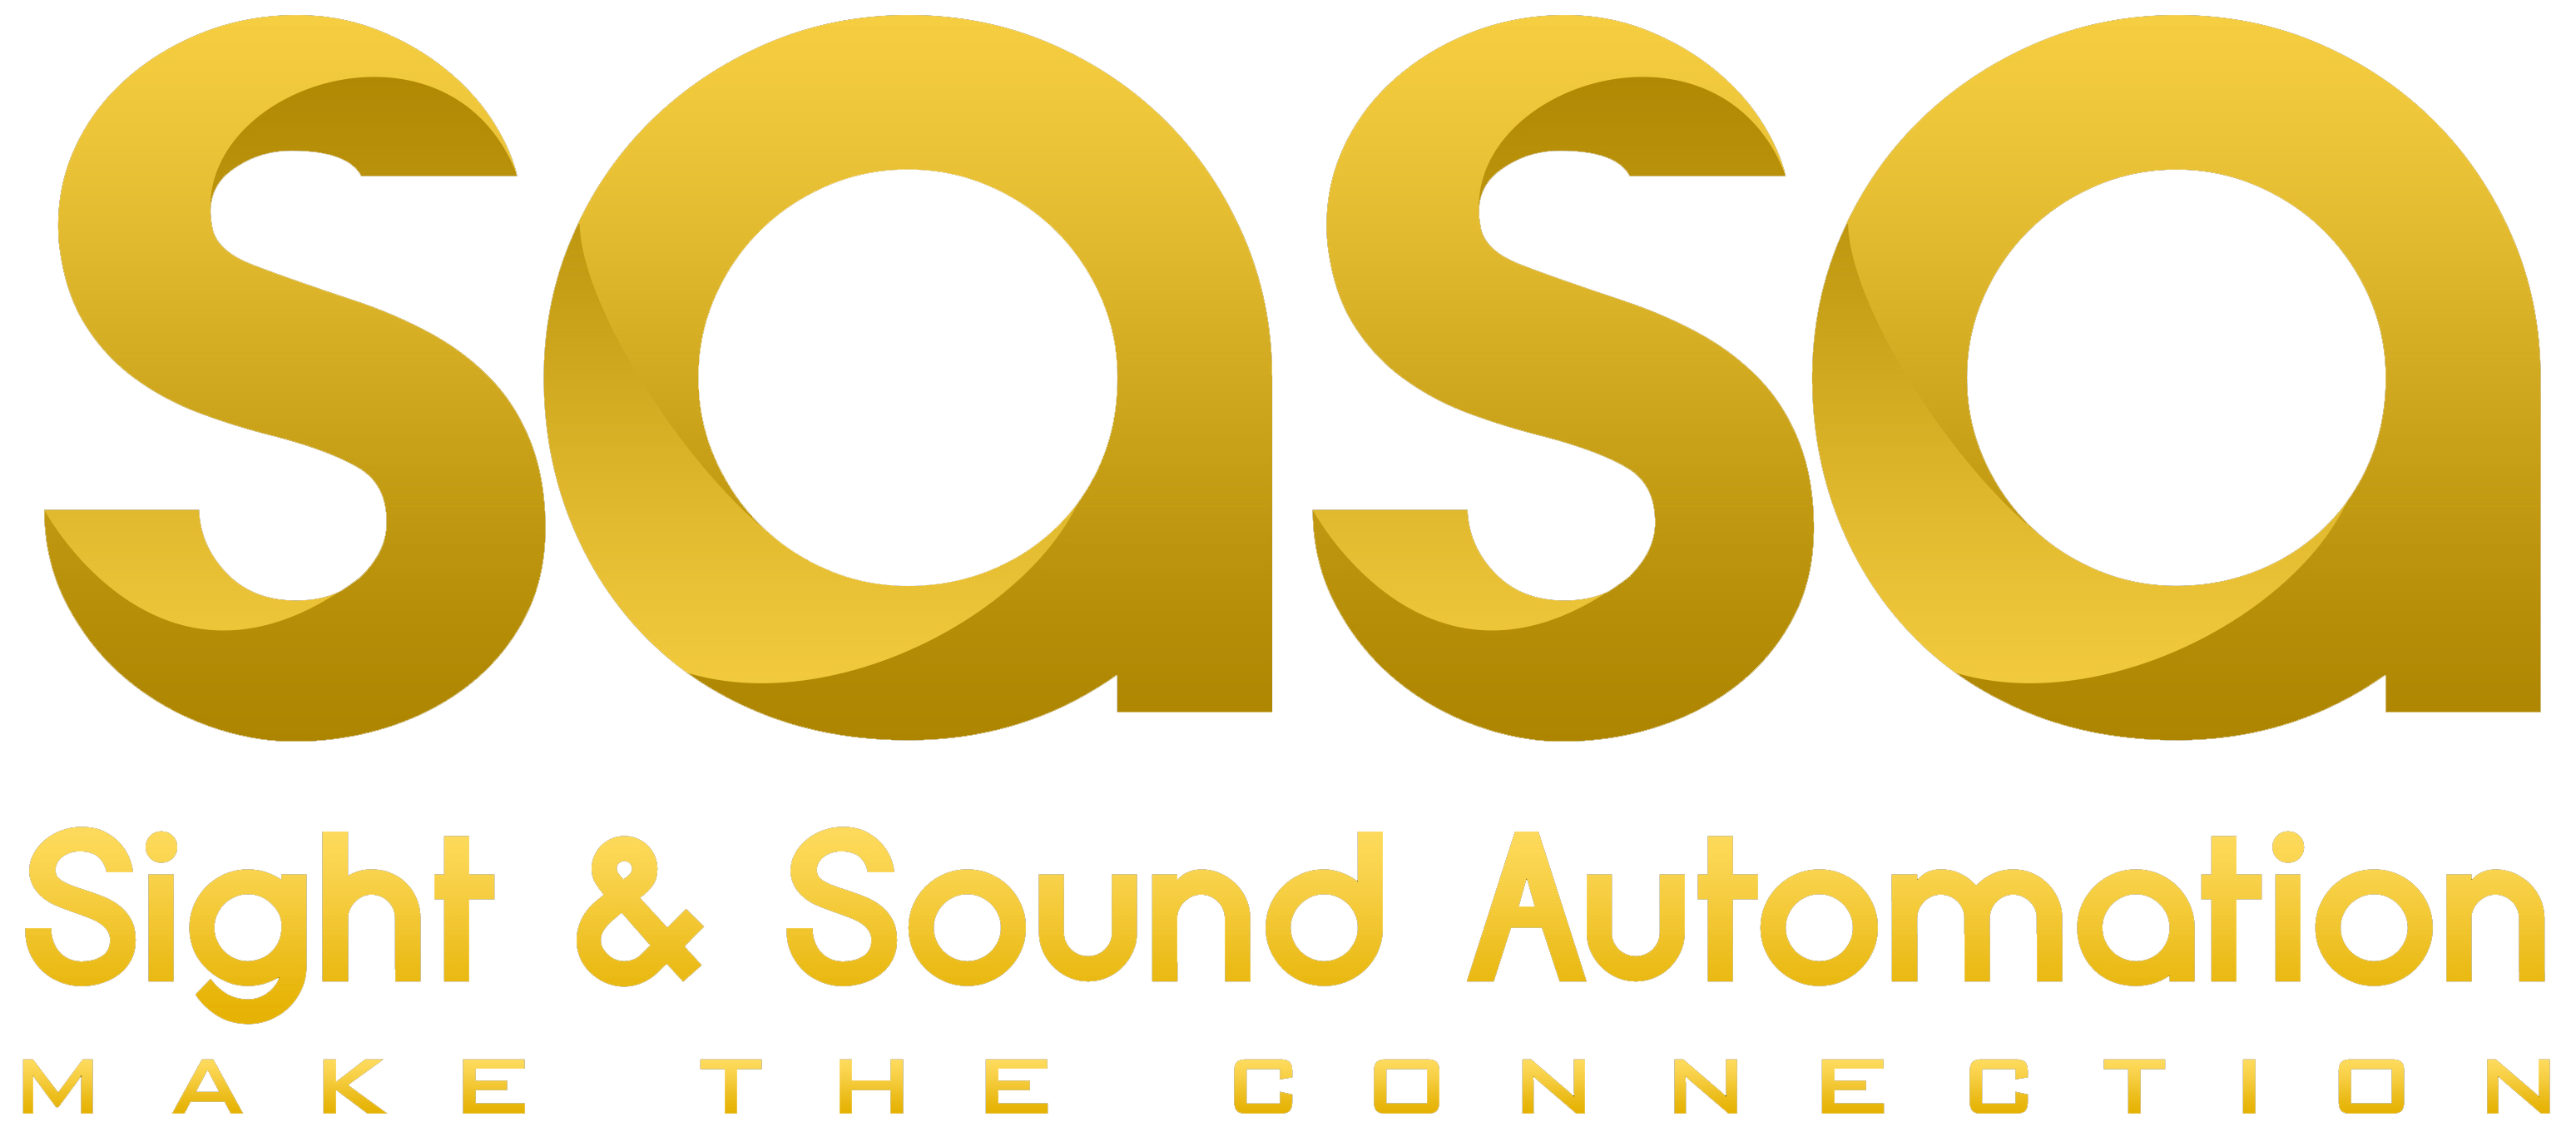 Sasa Logo - sasa-logo SASA – Sight & Sound Automation